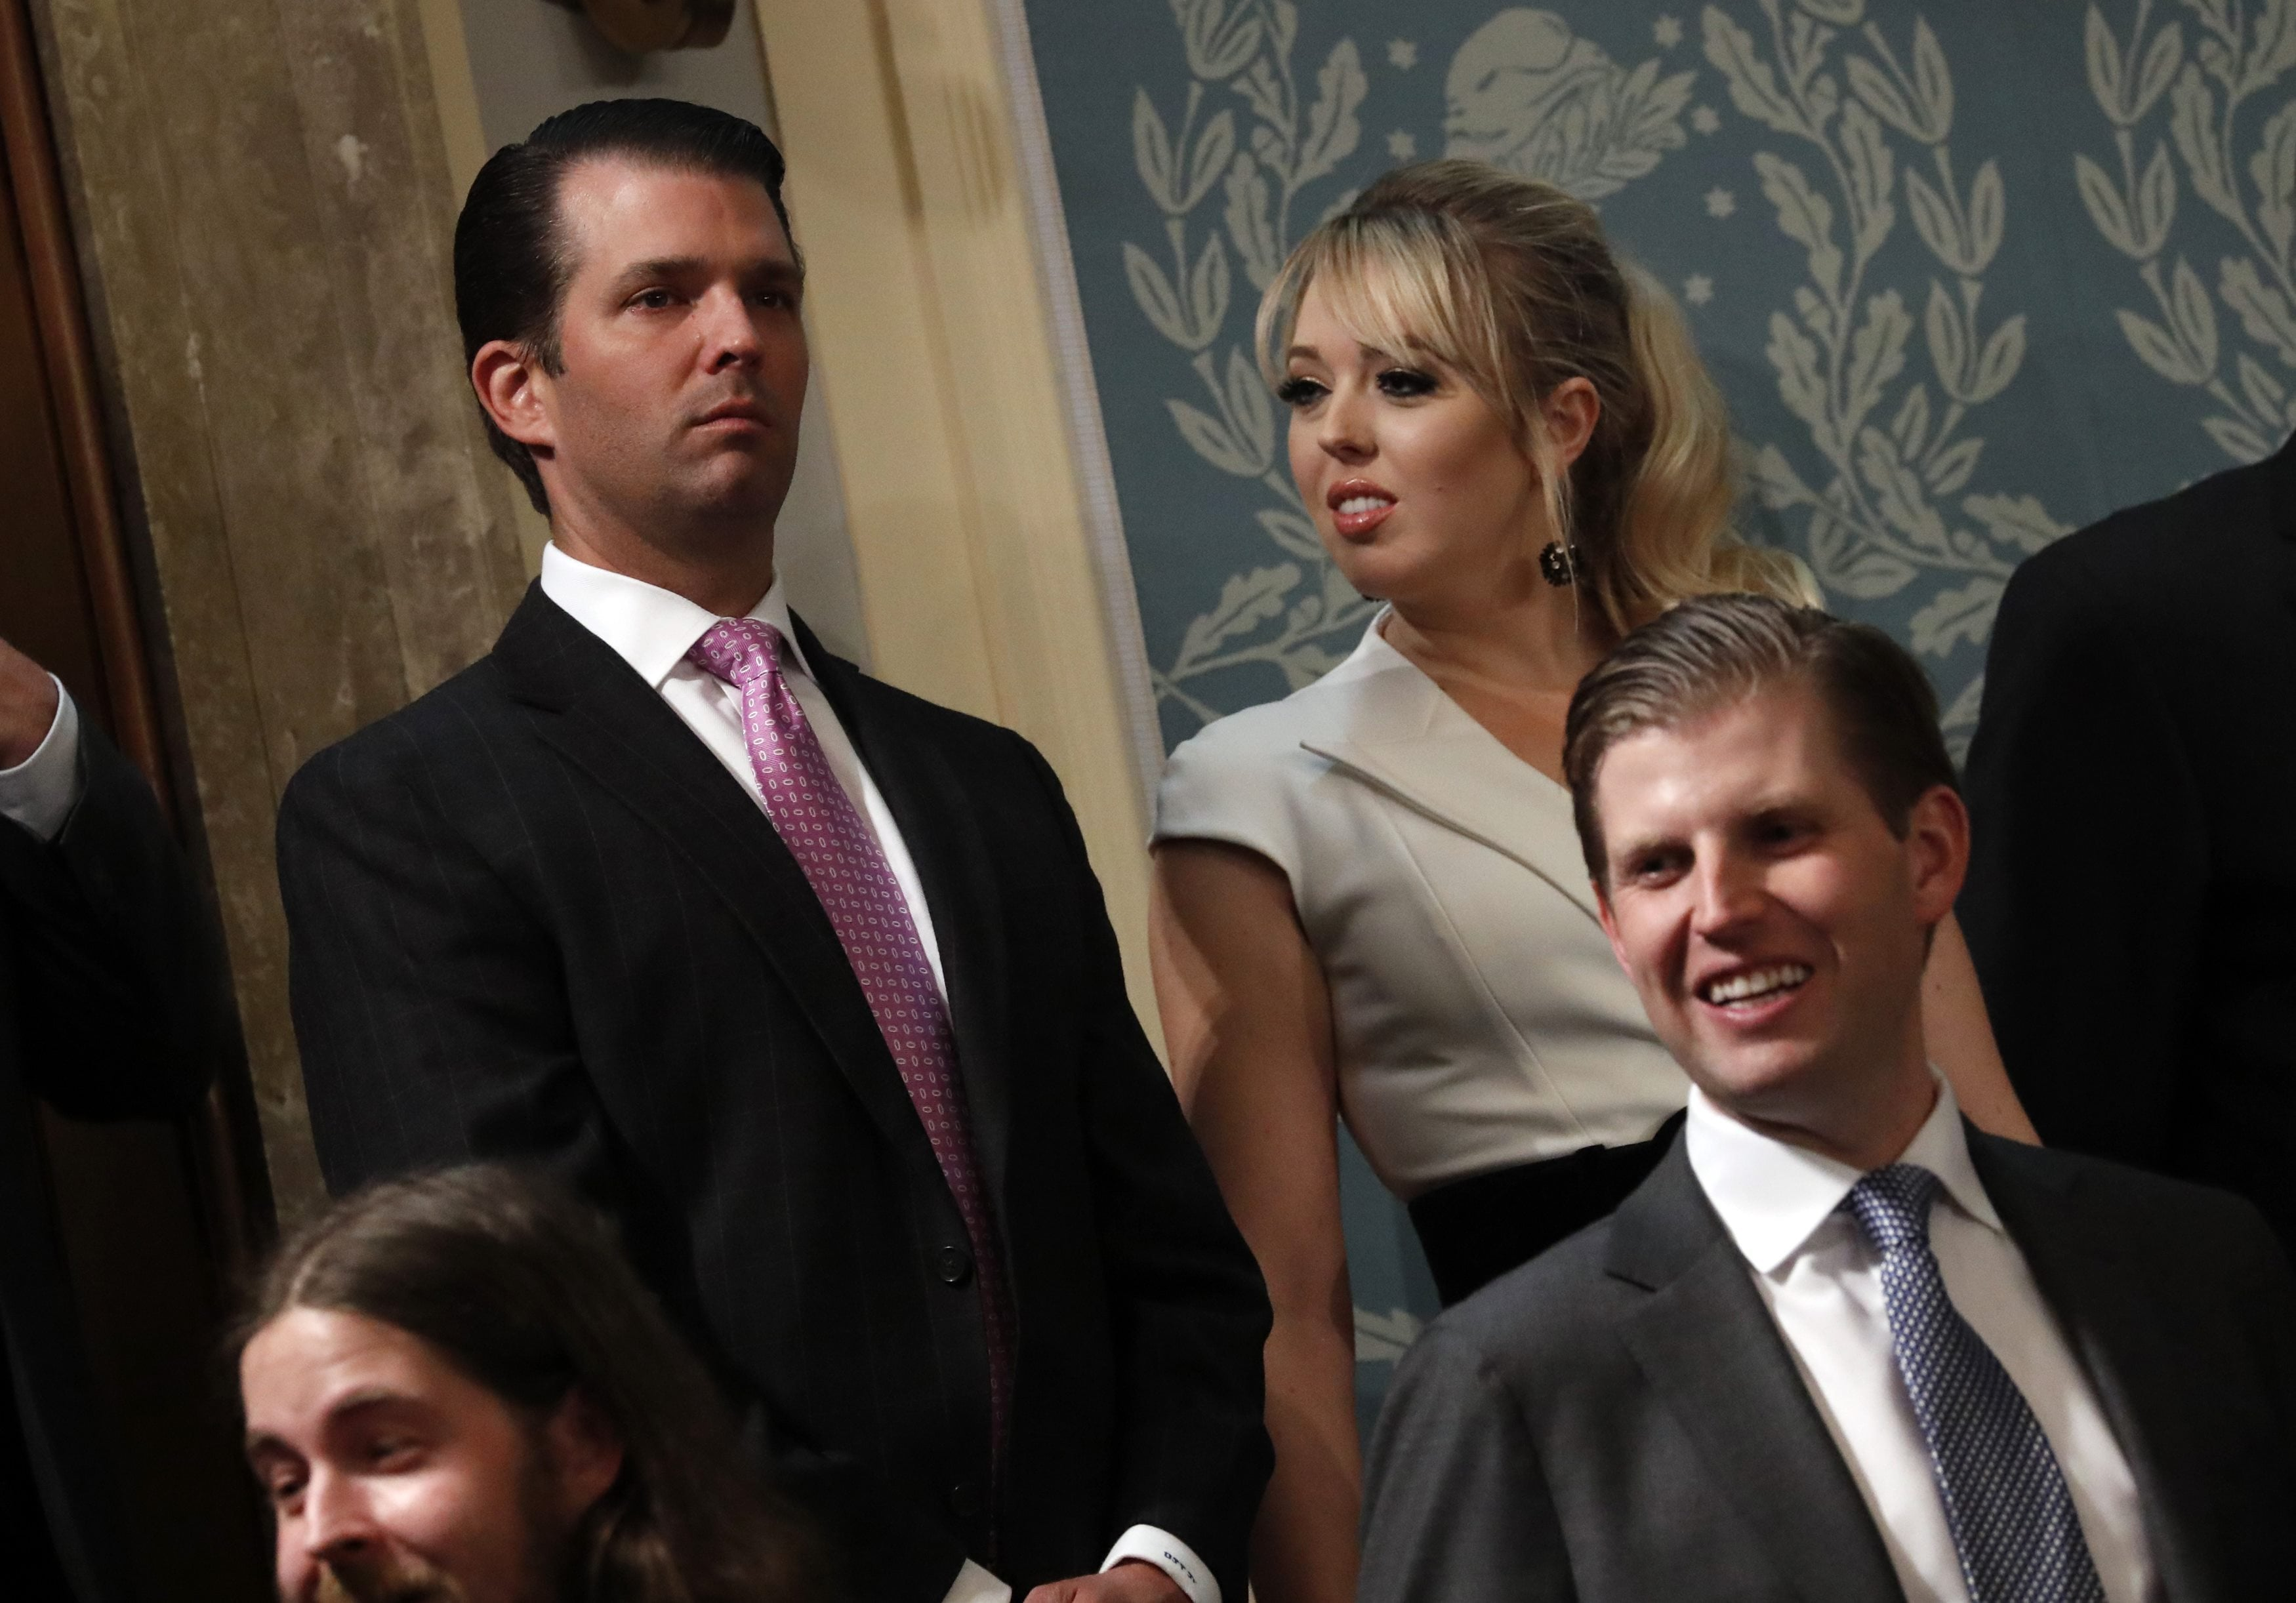 Donald Trump Jr, Tiffany Trump and Eric Trump attend President Trump's State of the Union address in Washington